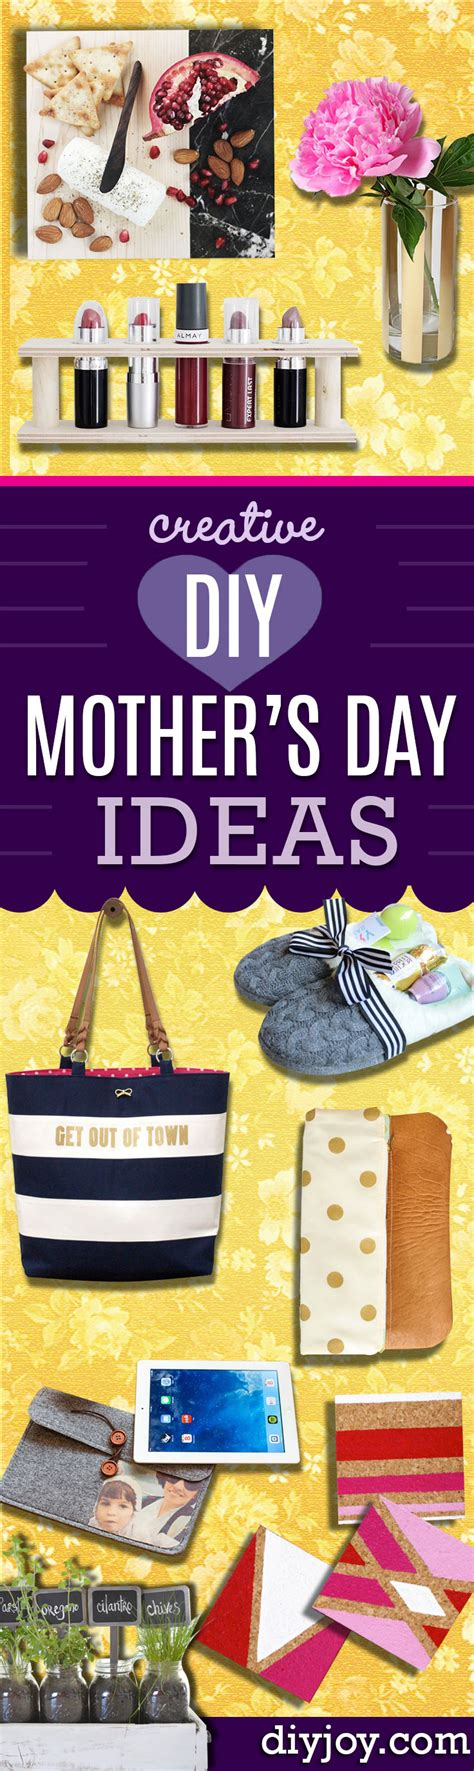 35 creatively thoughtful diy mother s day gifts diy joy 35 creatively thoughtful diy mother s day gifts